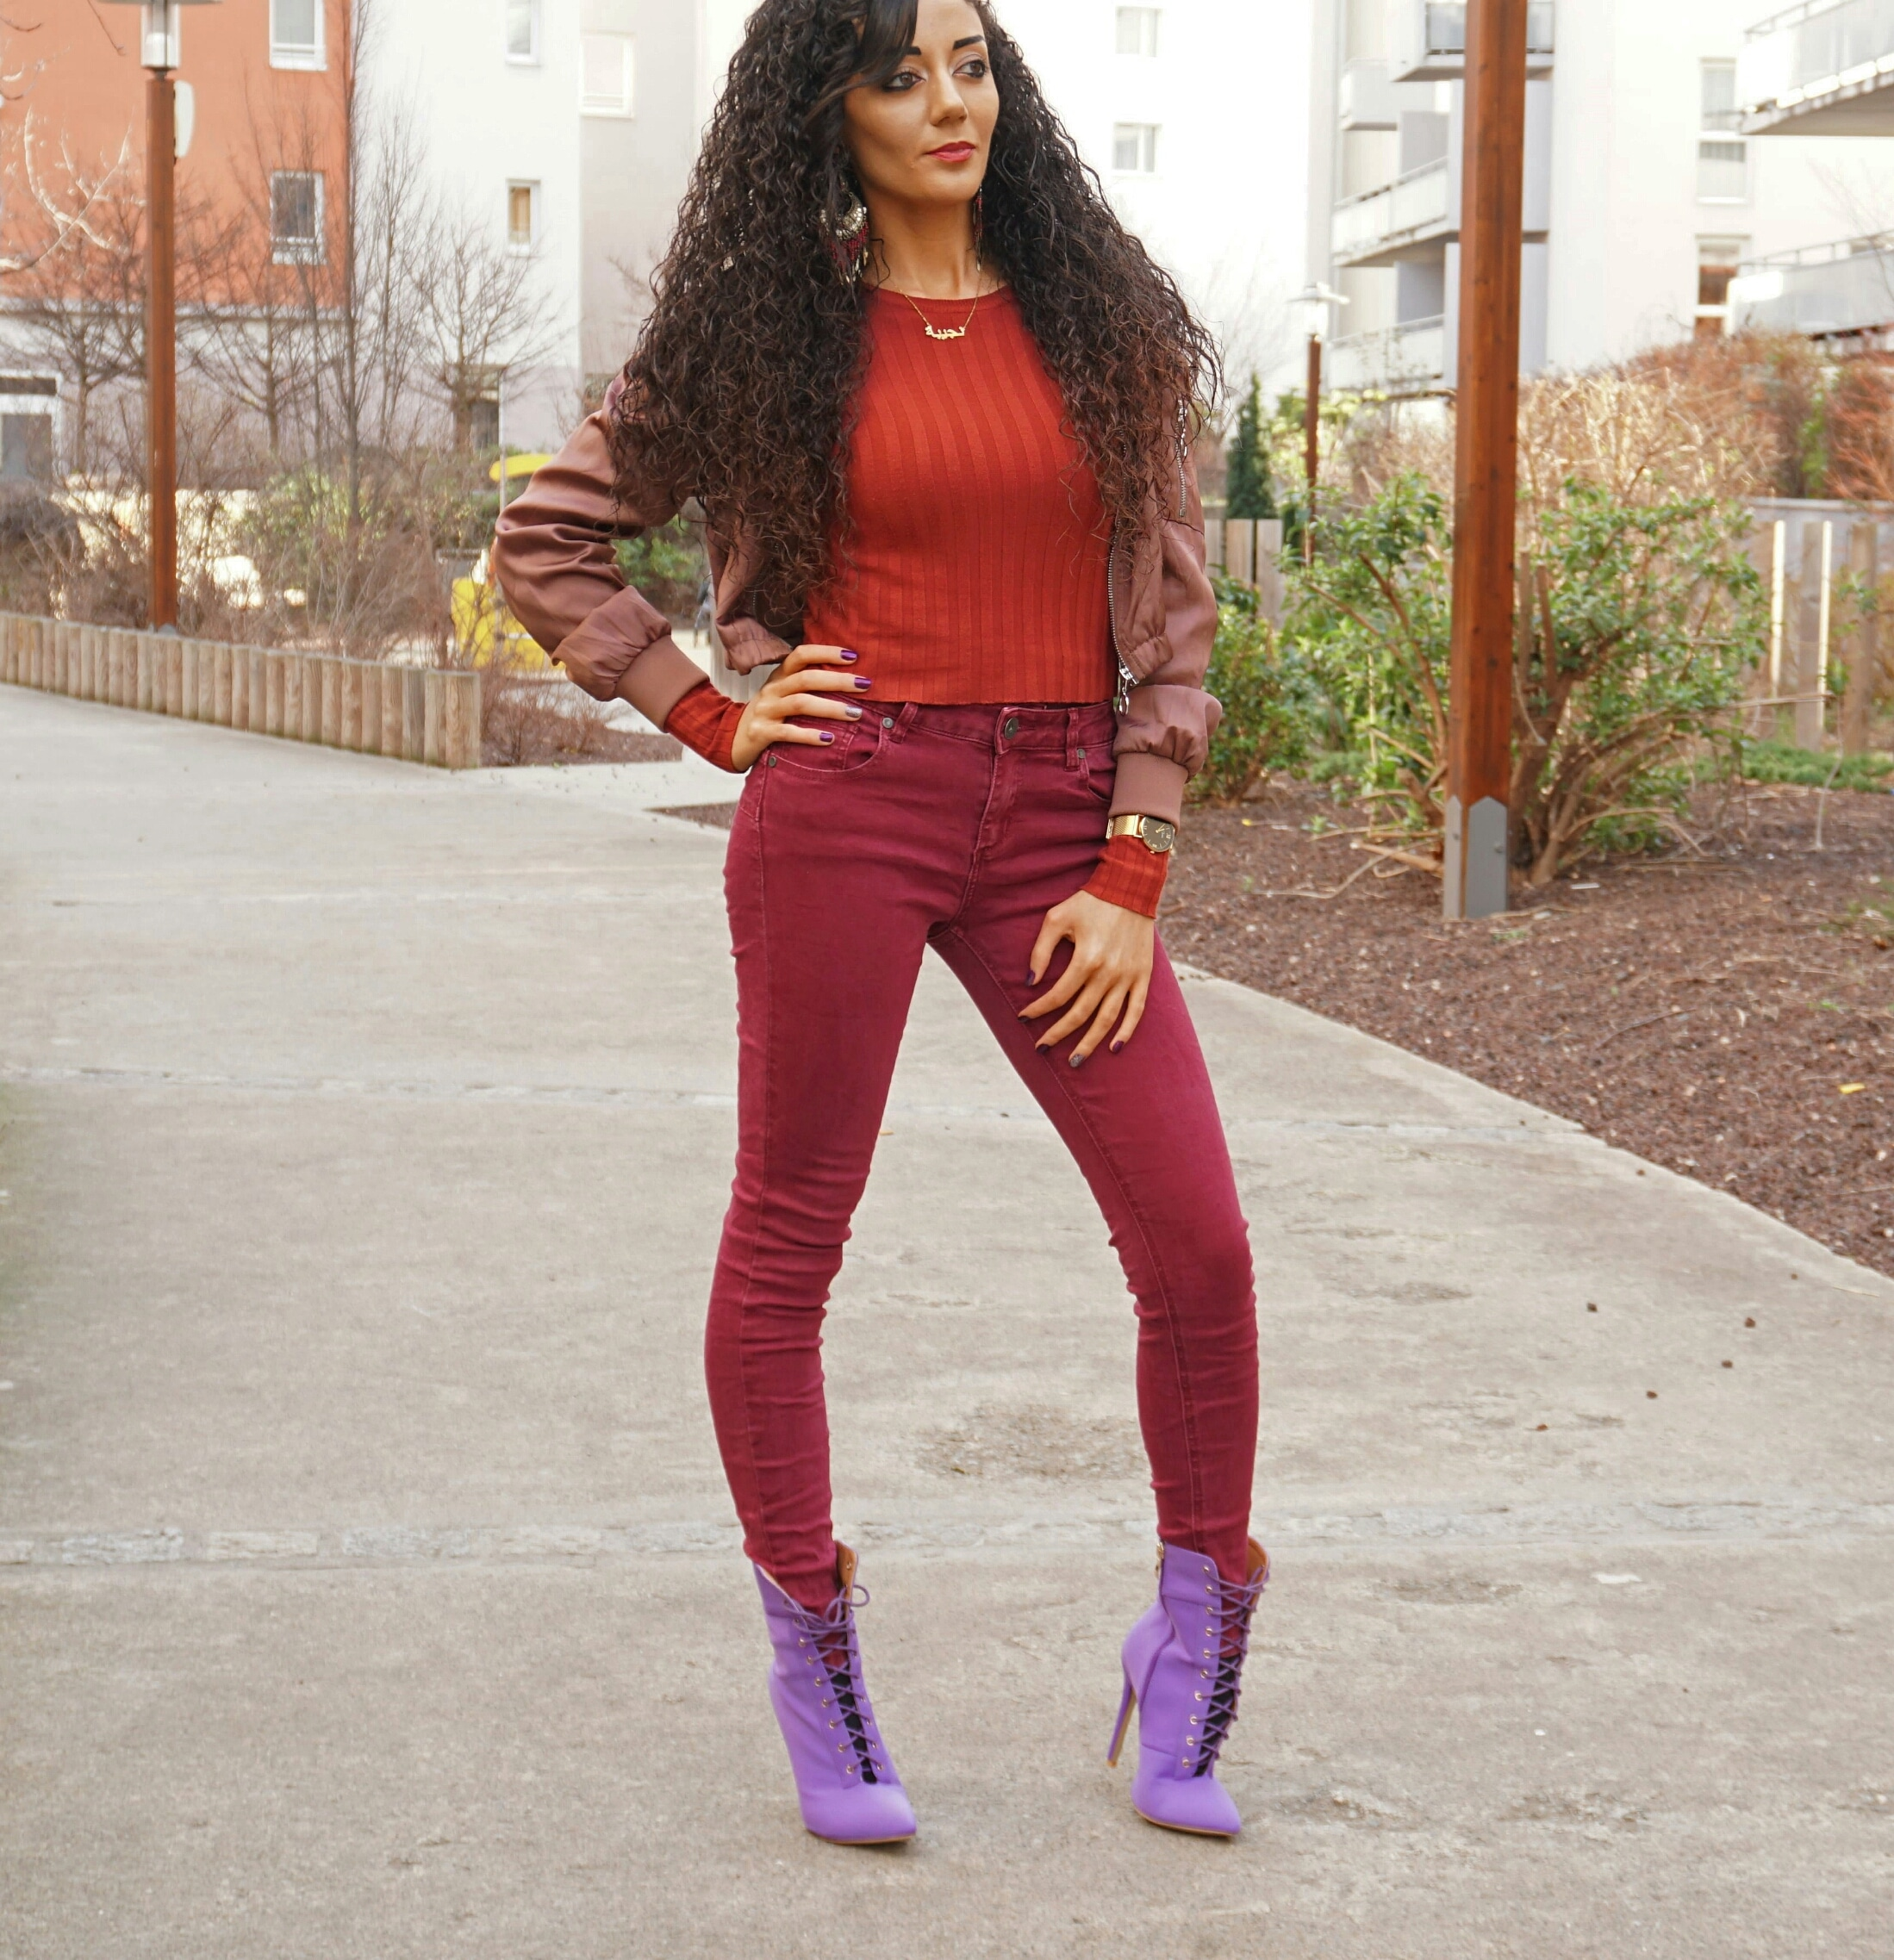 burgundy outfit and purple boots from ego official